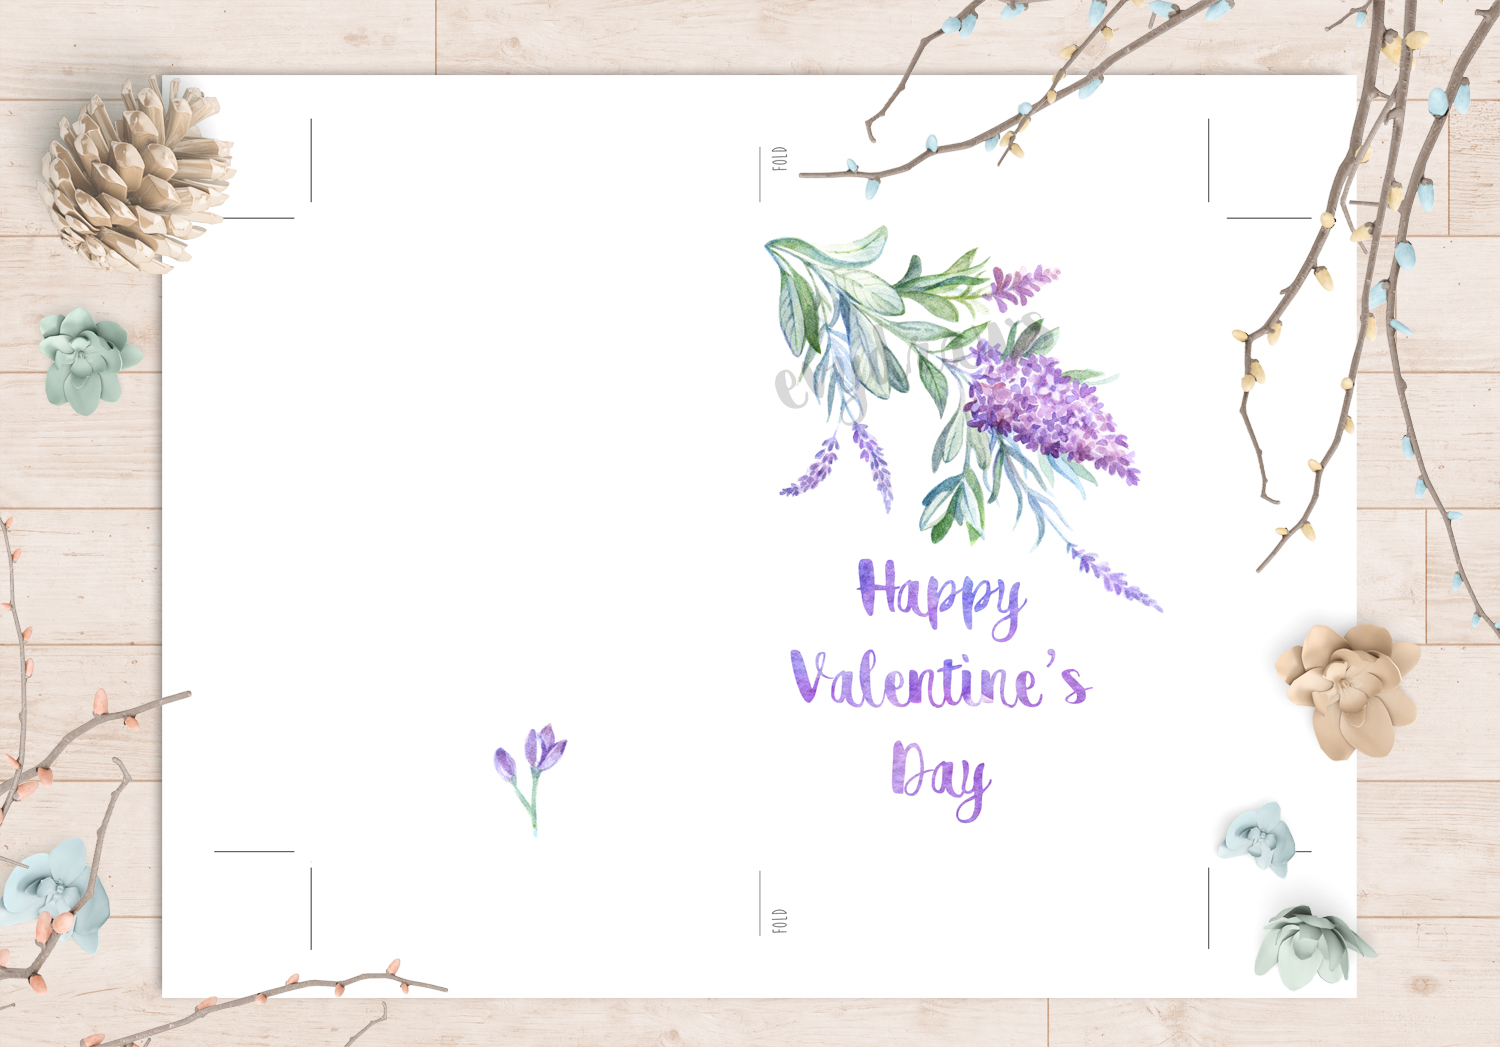 """* This hand-drawn """"Happy Valentine's Day"""" card with a romantic watercolor flower illustration is perfect as a last-minute DIY gift.  * A cute floral bonus illustration decorates the back of the card and the printable design comes with a wide margin and guidelines to make your printing, cutting, and folding easy!  * The calligraphy element can be personalized - request a customization and I'll add a personal message with the same watercolor pattern font."""